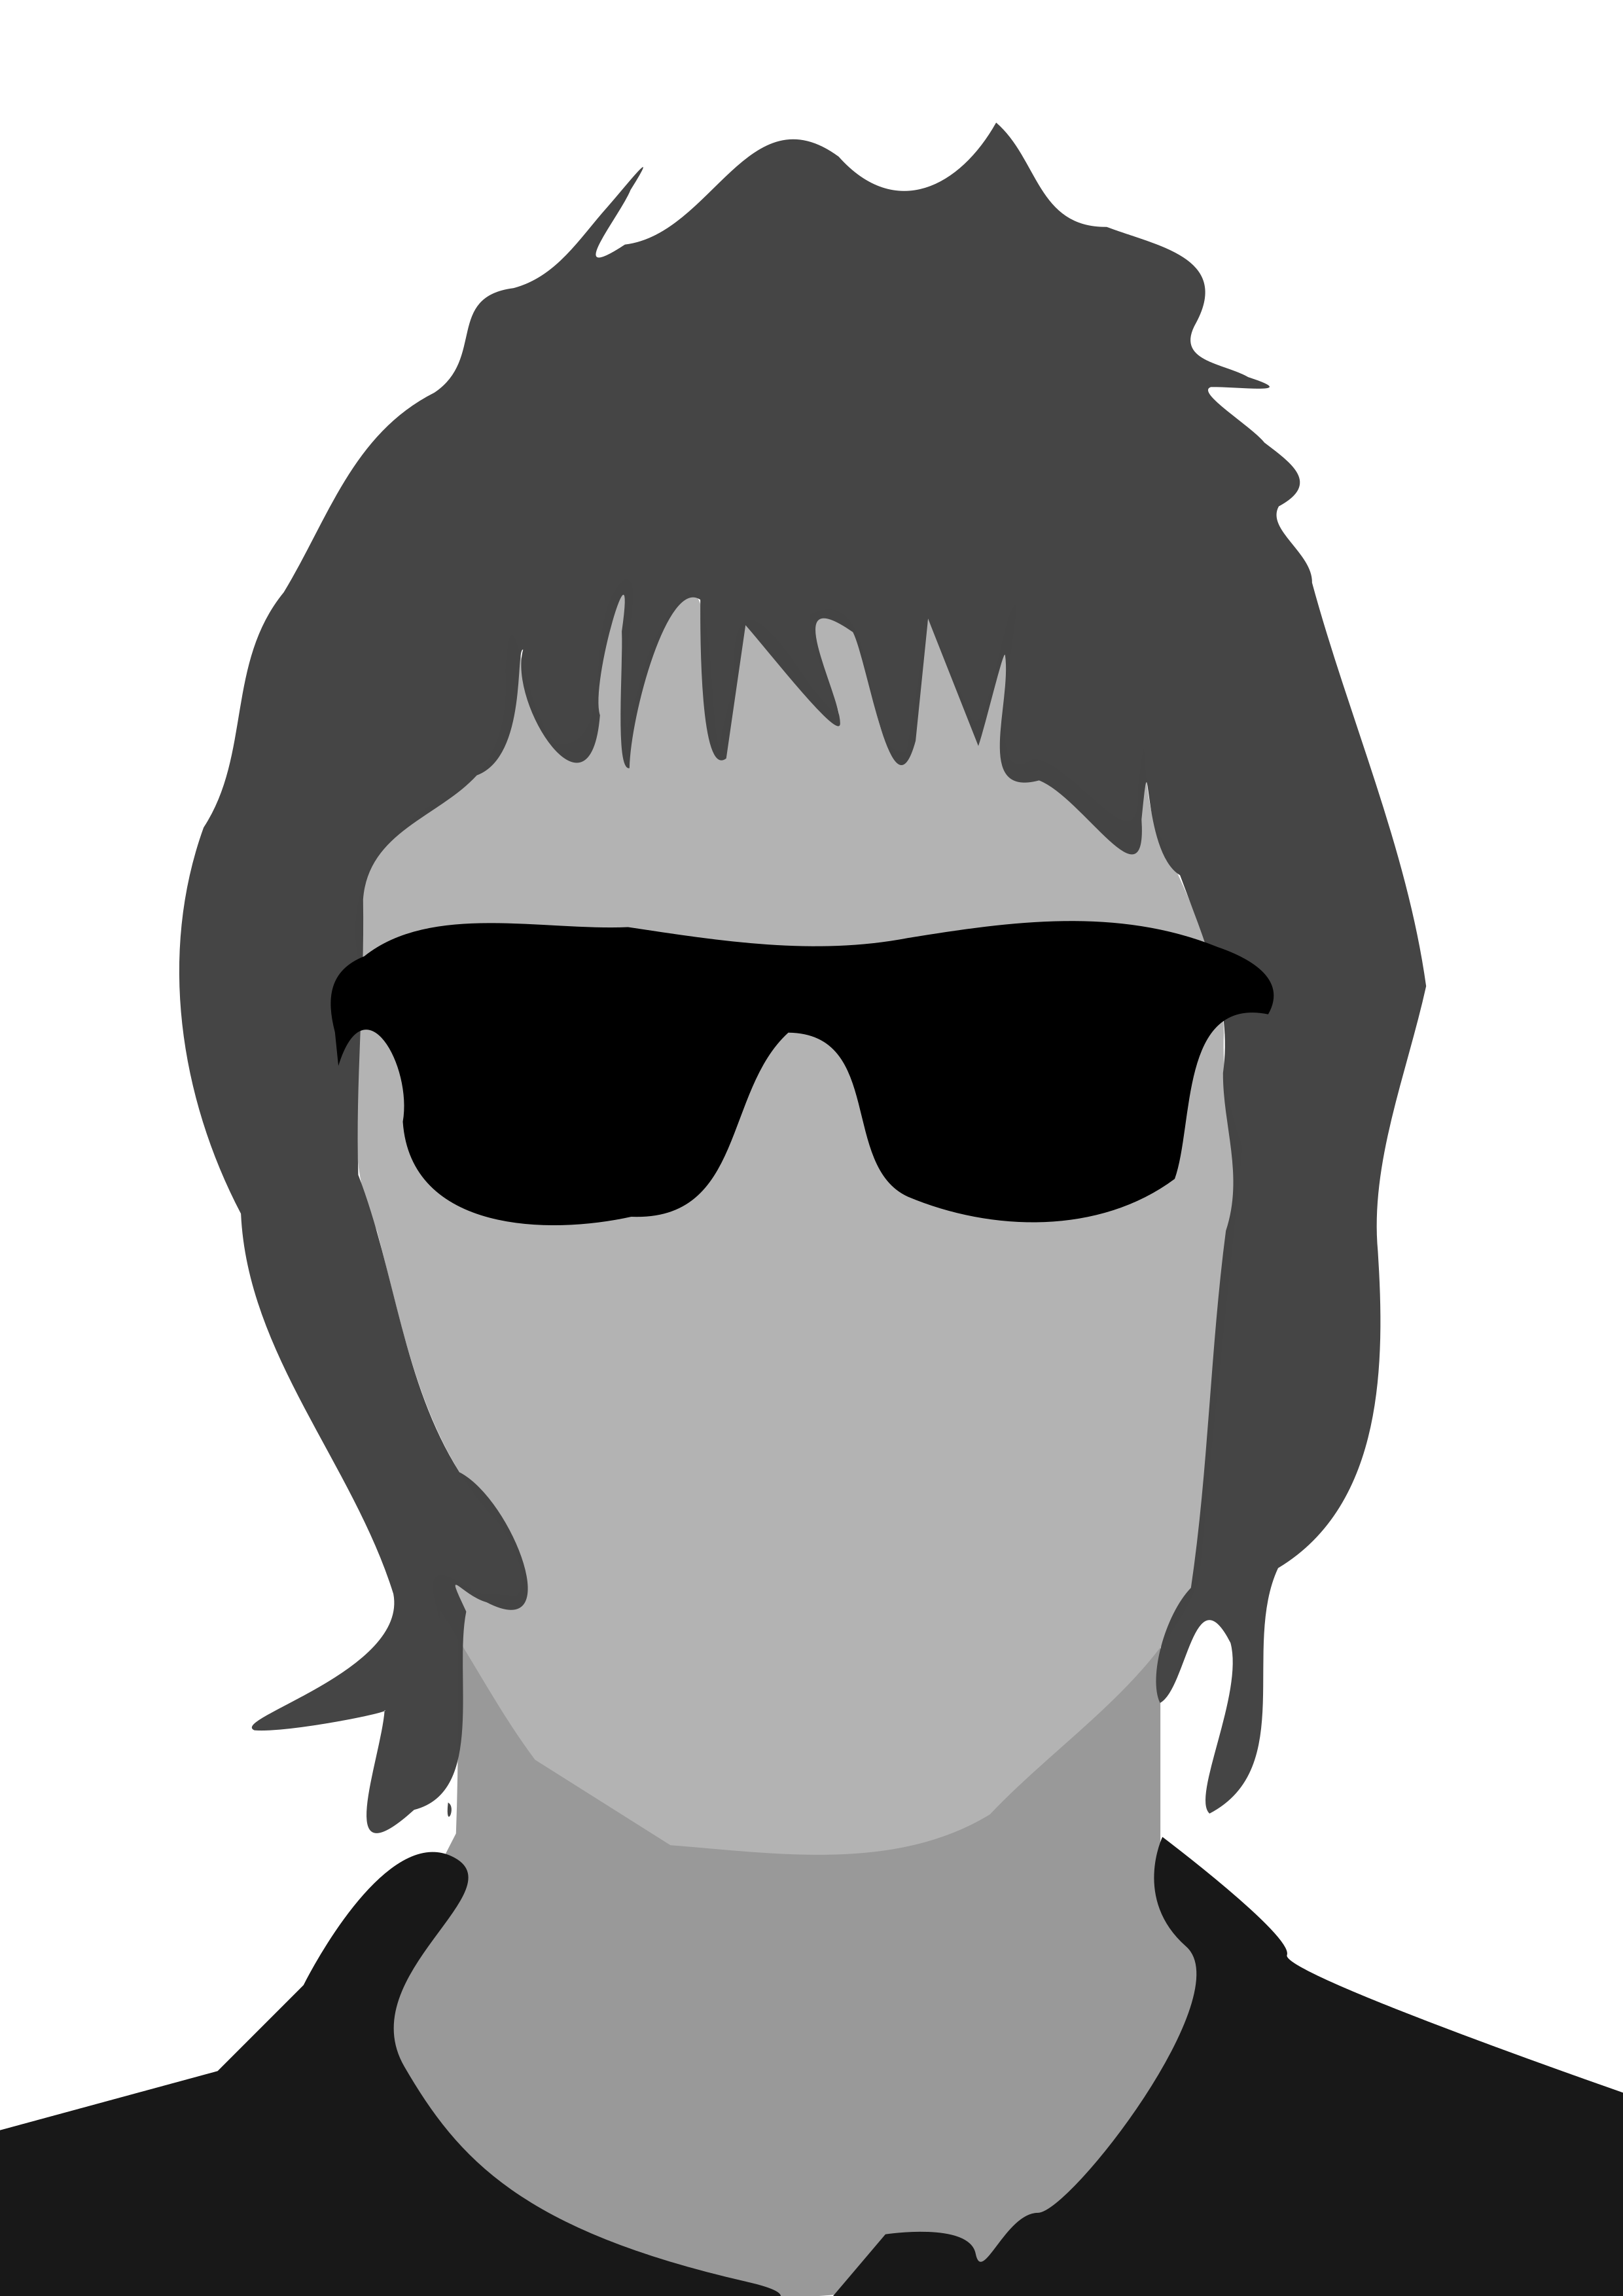 Liam gallagher clipart image freeuse library Liam Gallagher Vector Art - Imgur image freeuse library